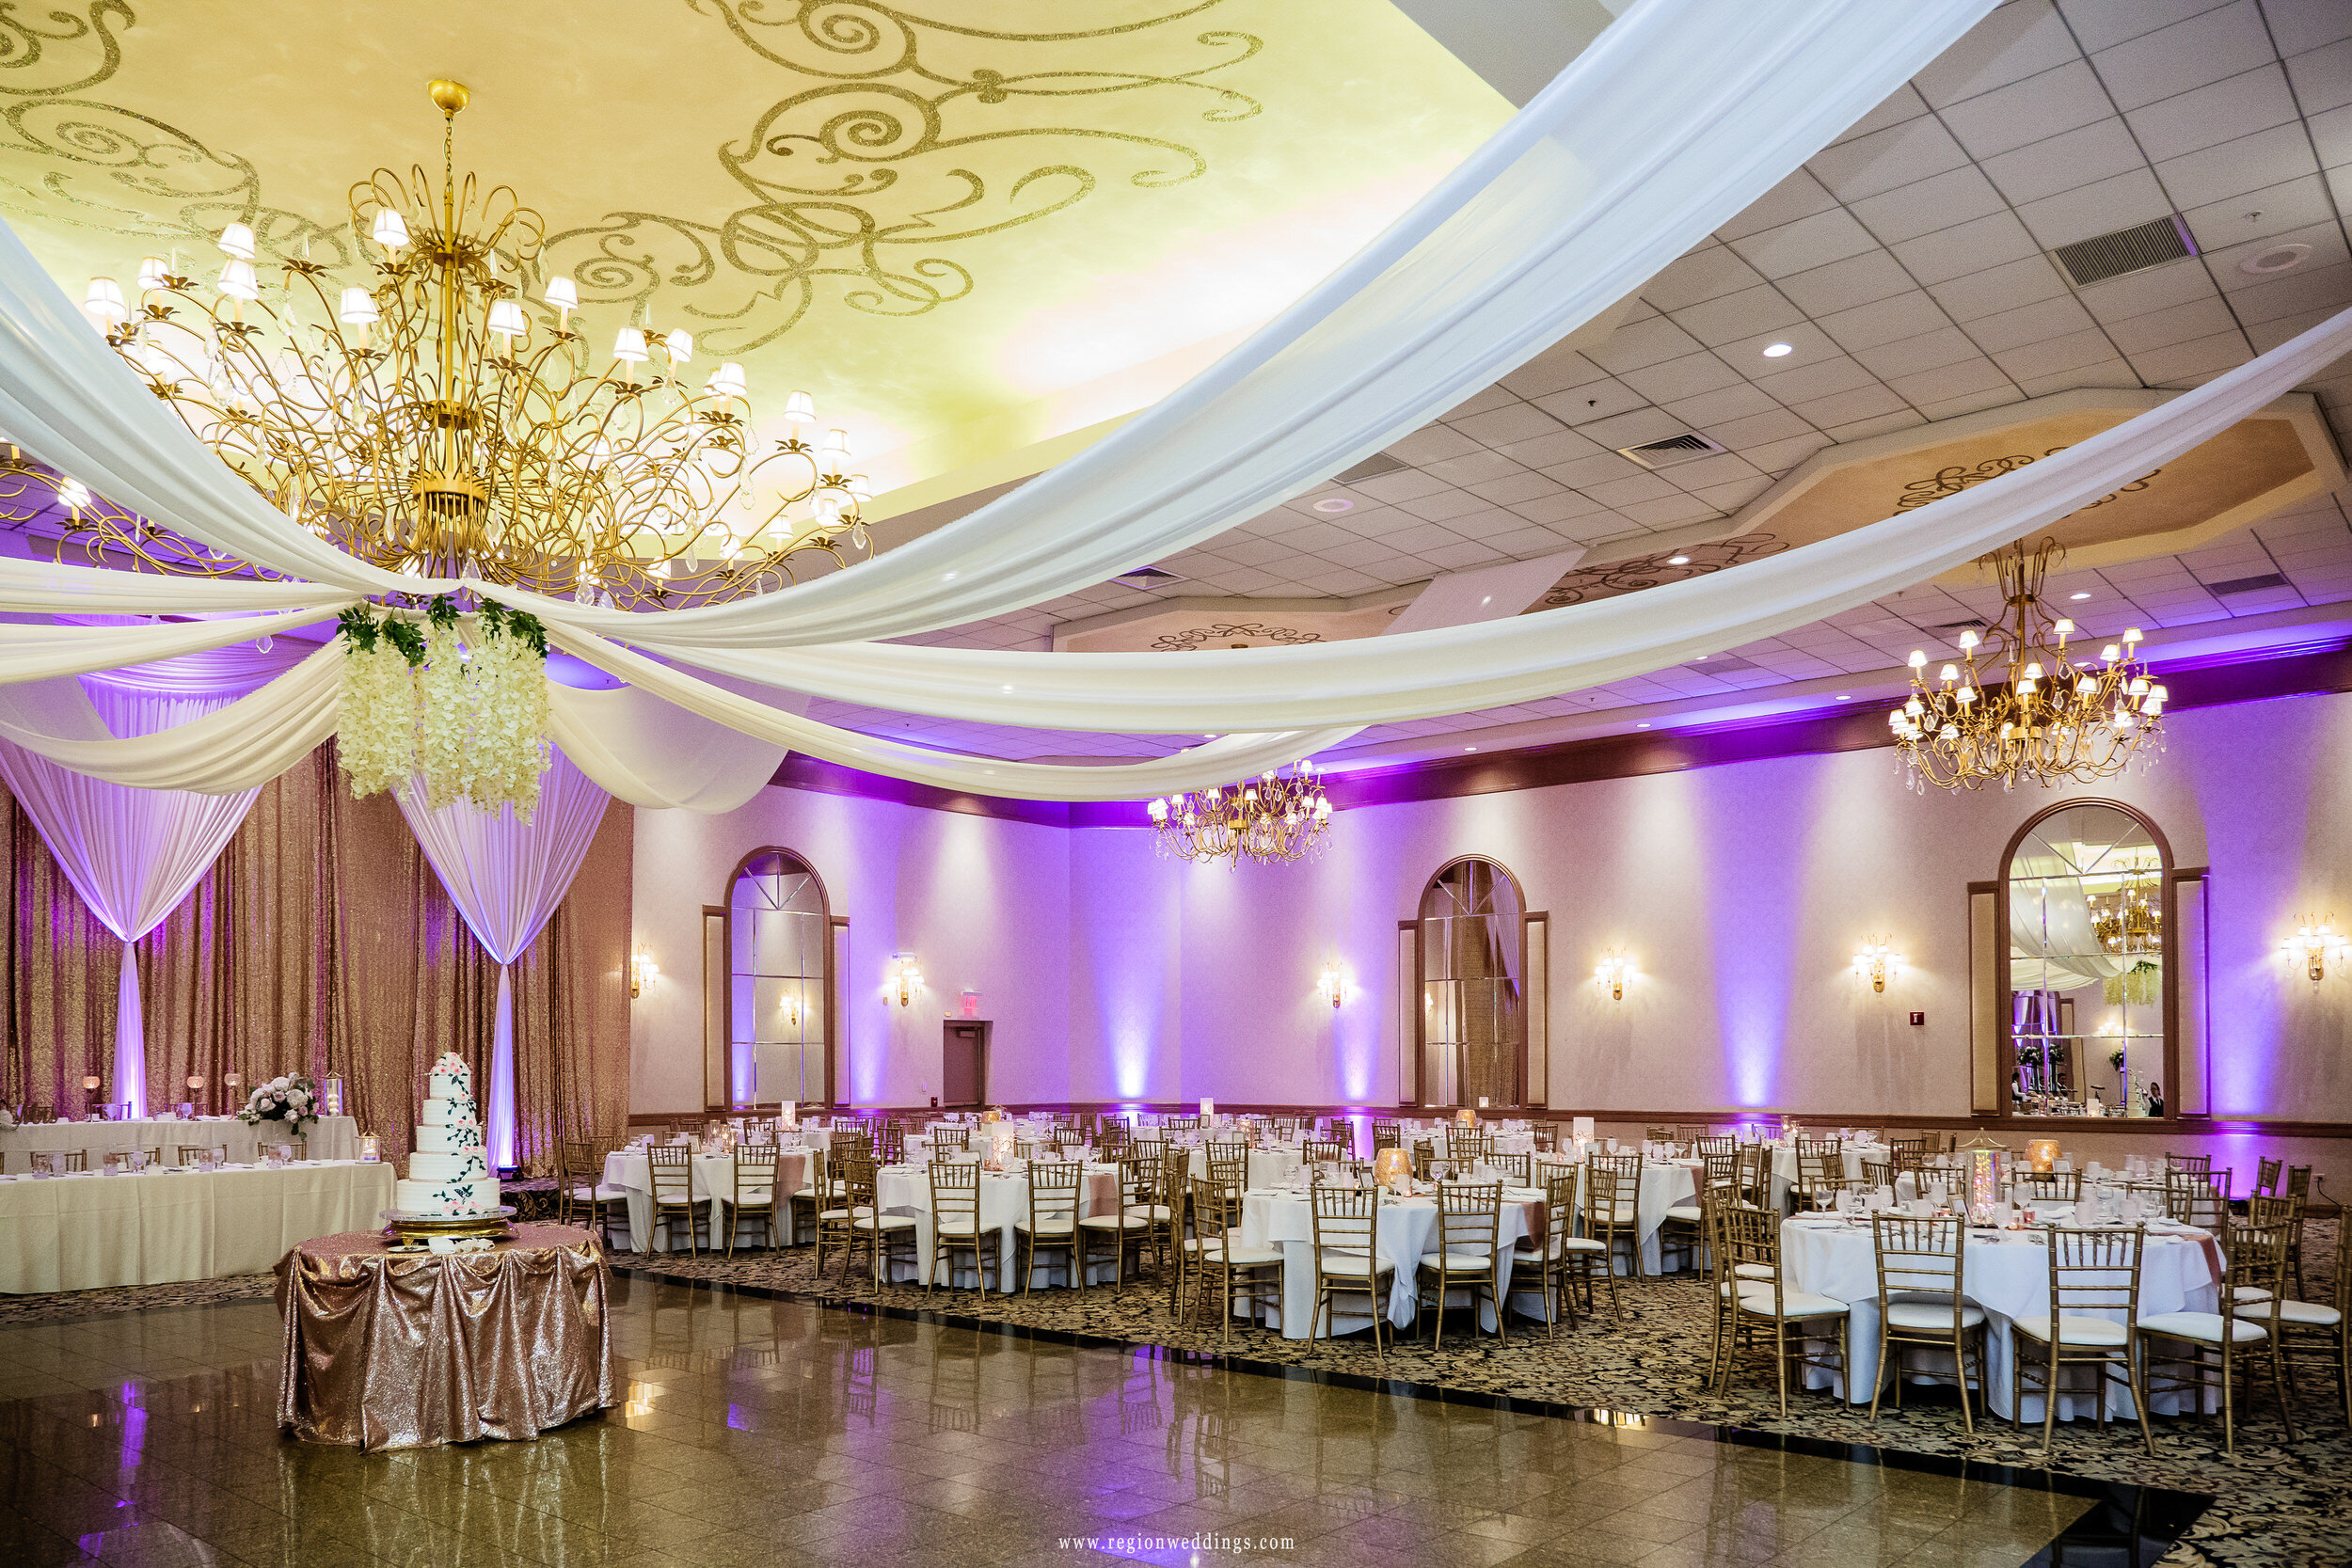 The ballroom at Meridian Banquets and Conference Center in Rolling Meadows, Illinois.